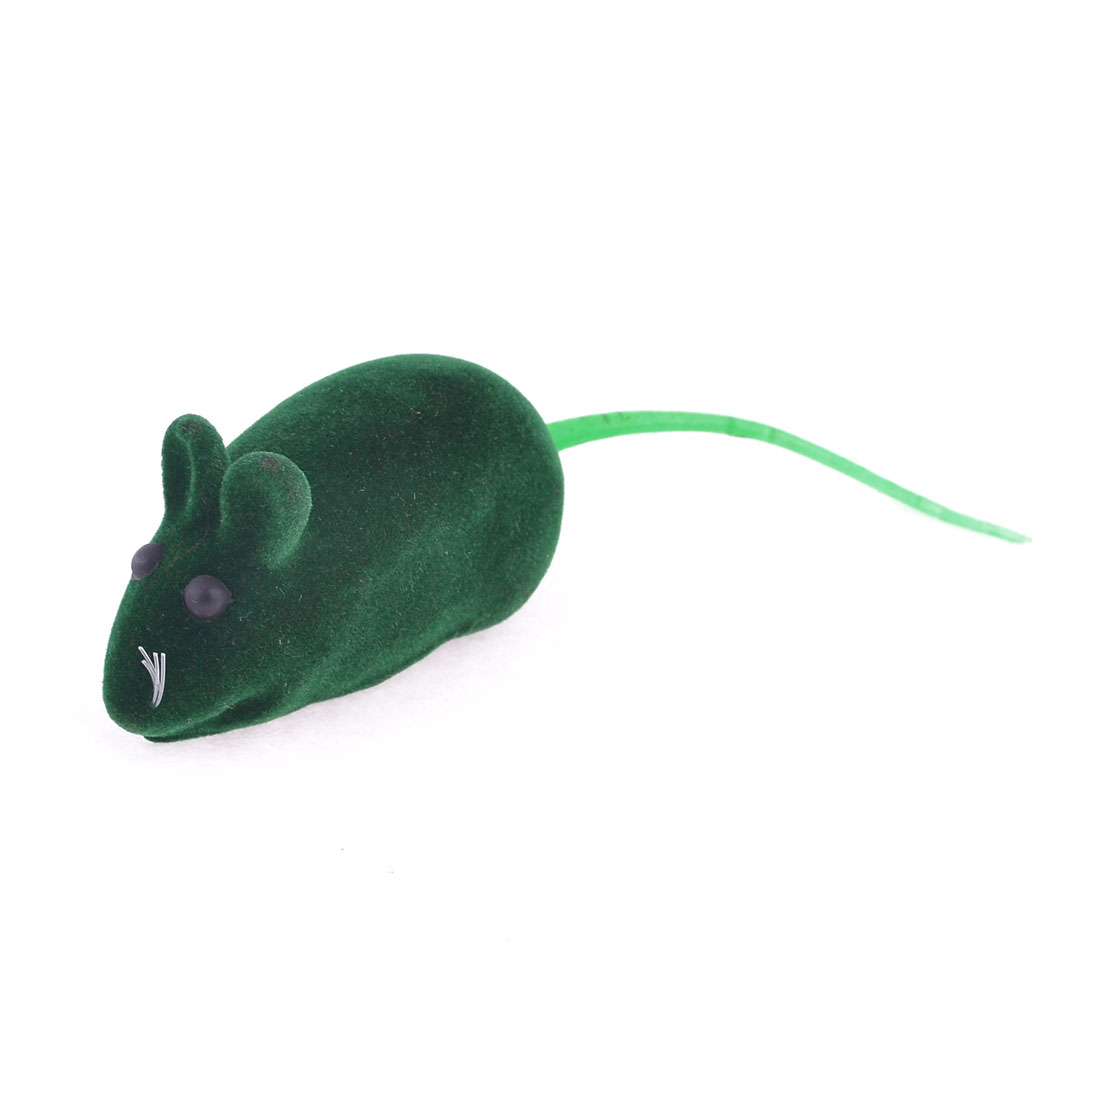 Green Mouse Shape Black Eyes Squeaky Chew Toy for Pet Dog